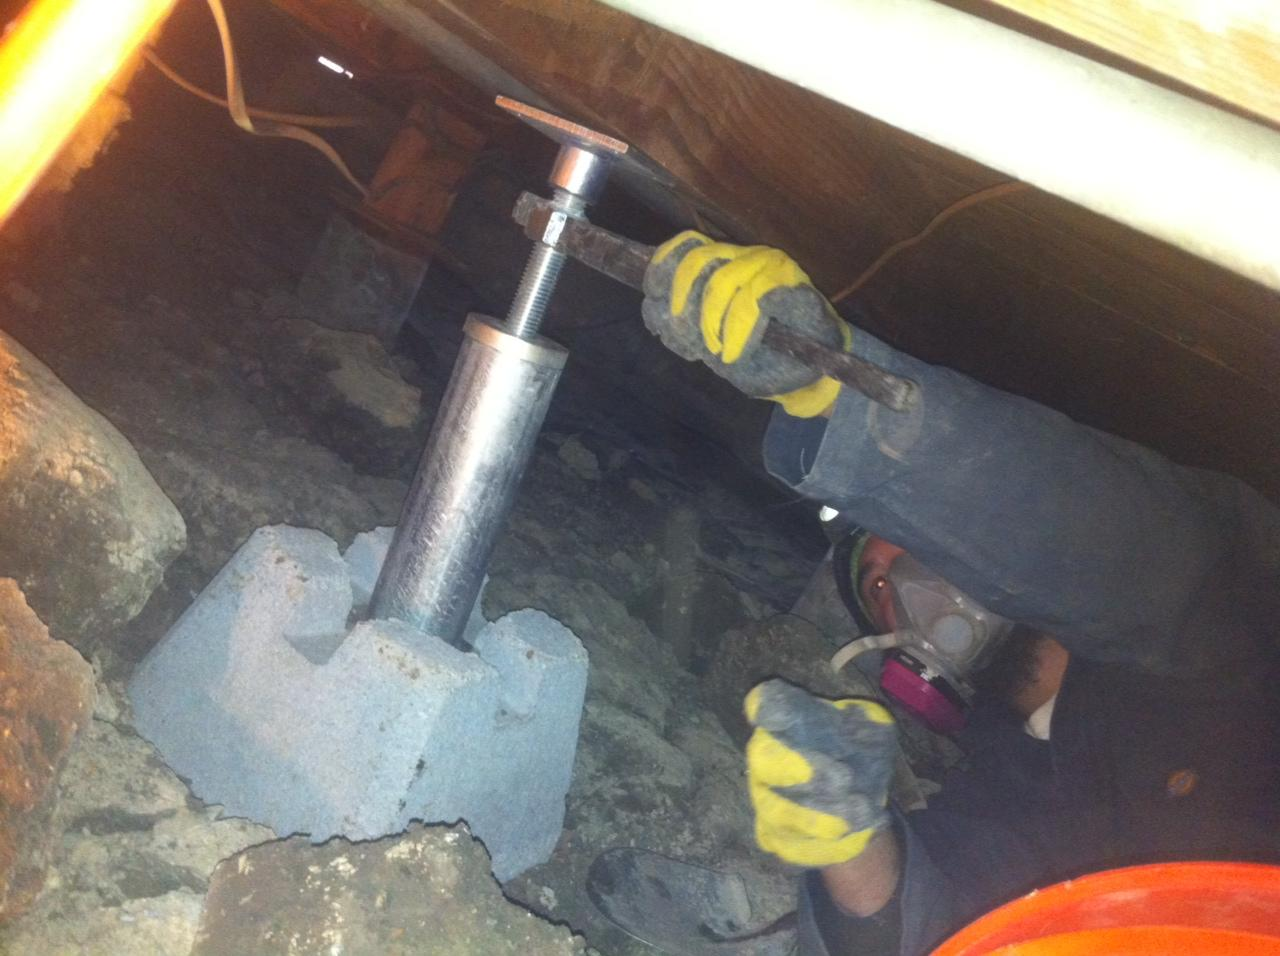 Smart Jack installed in crawl space